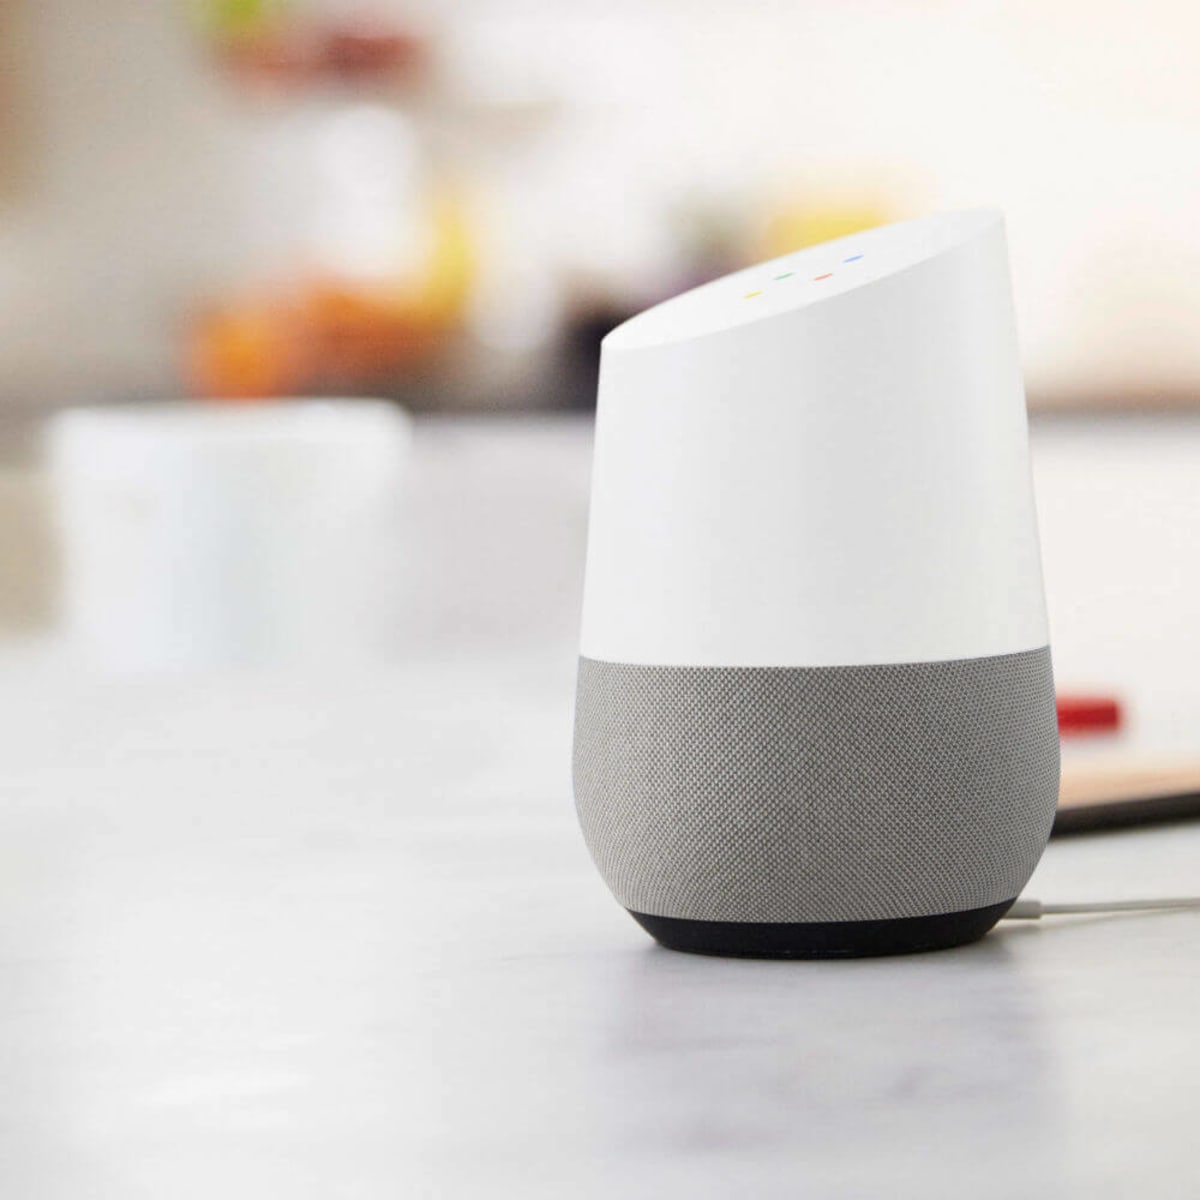 Black Friday Score A Google Home For Next To Nothing Airows